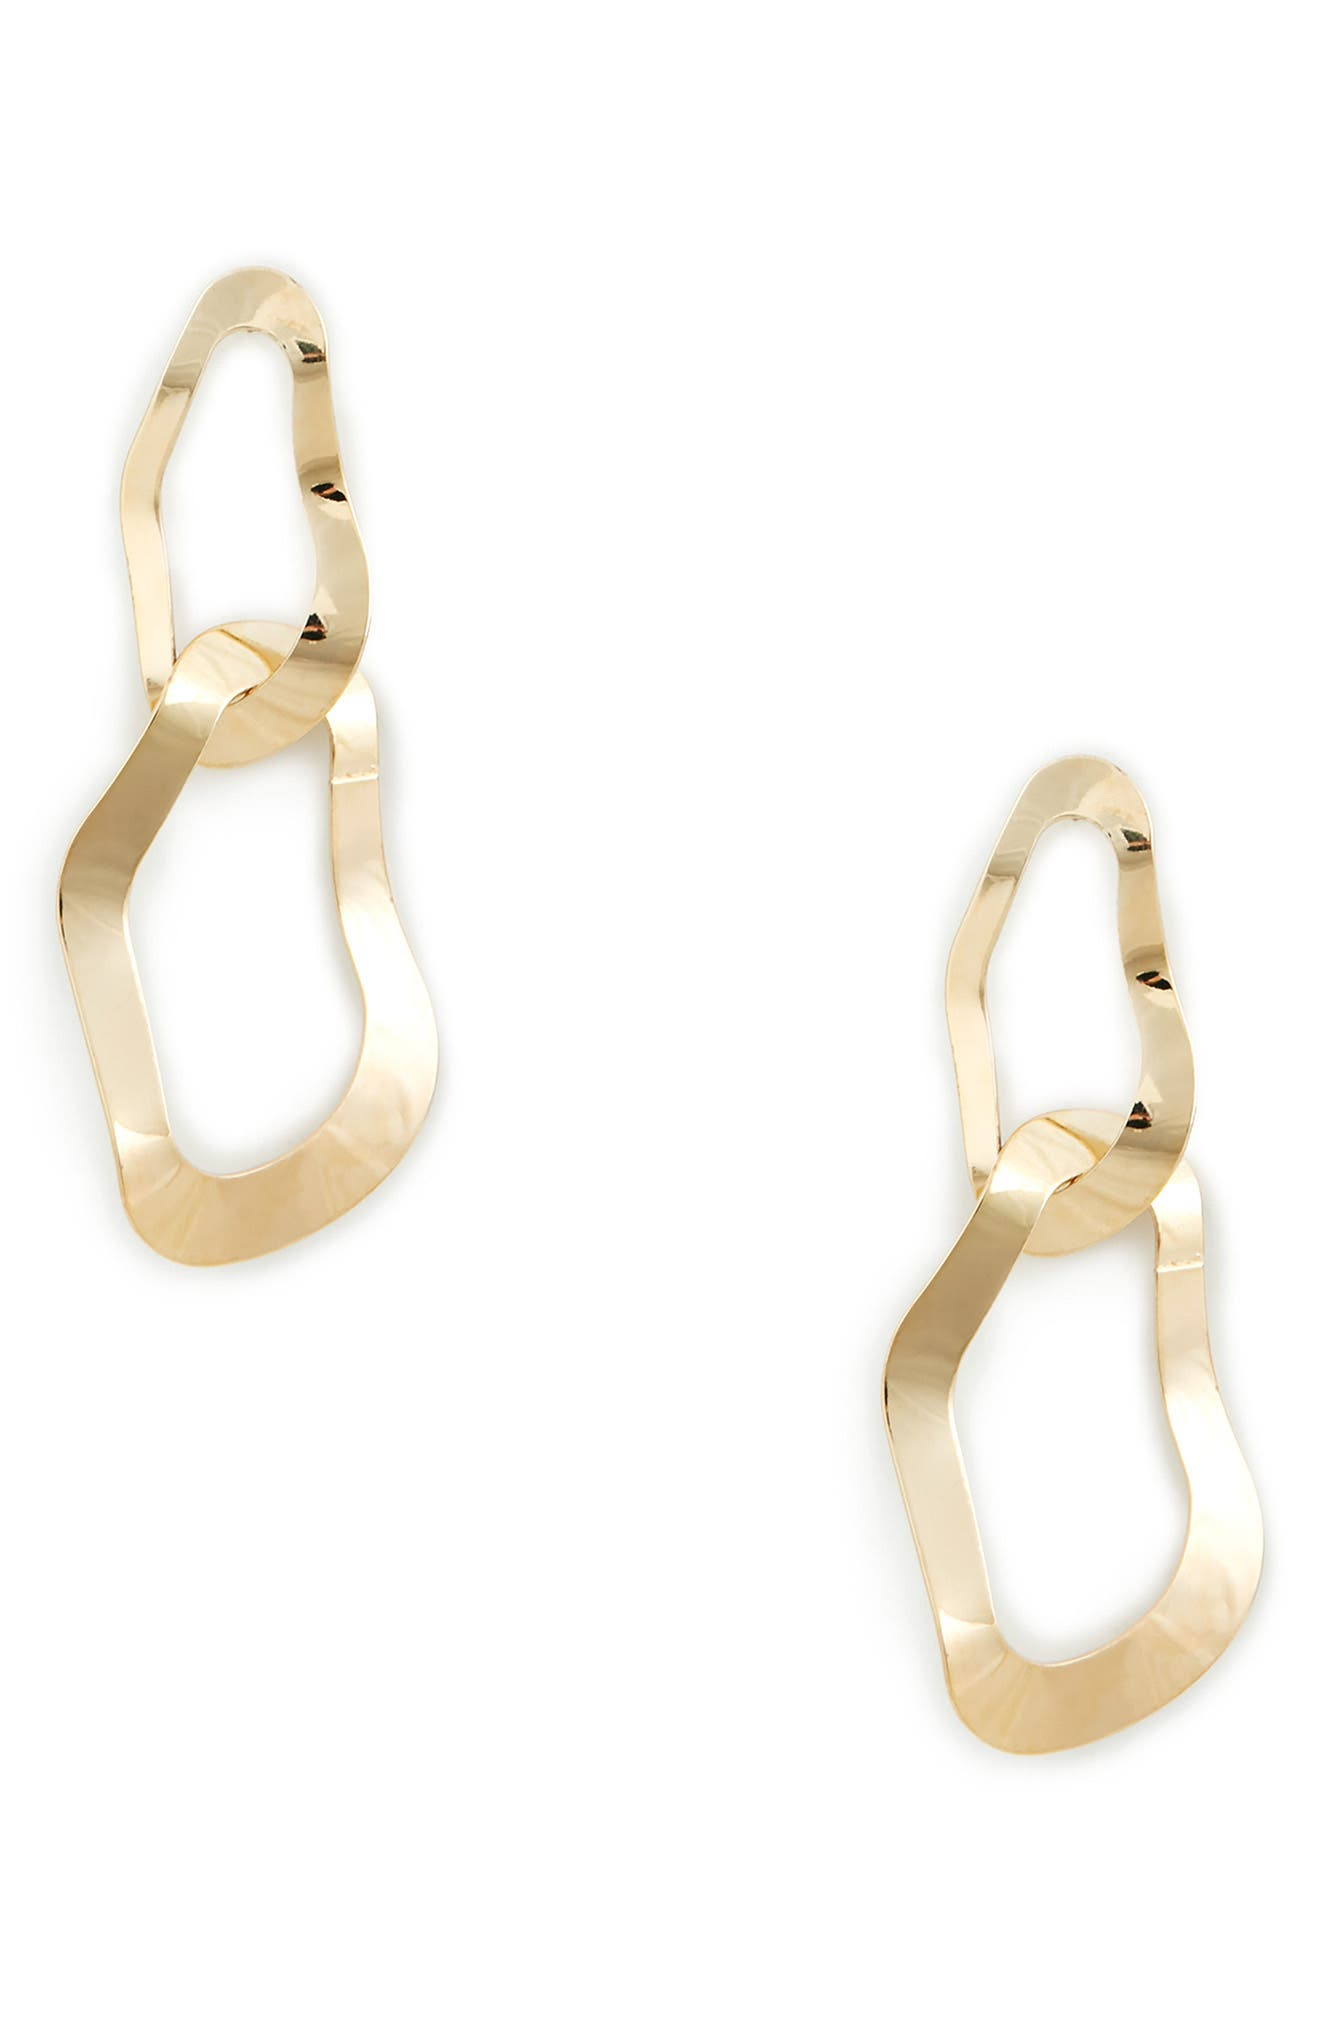 Twisted Metal Statement Earrings,                             Main thumbnail 1, color,